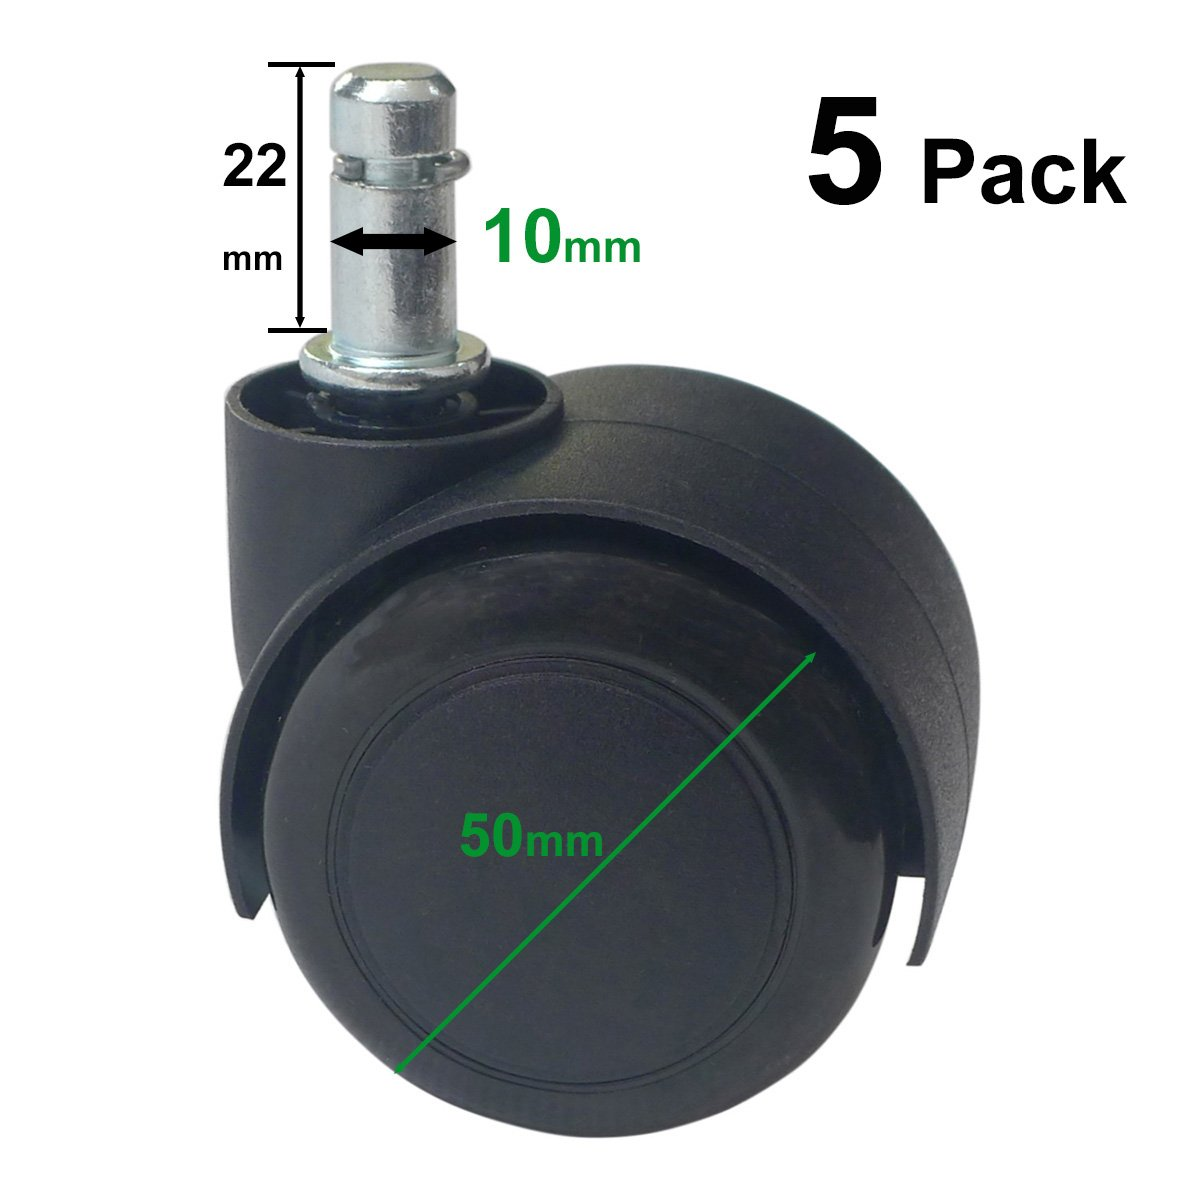 10mm Stem Caster for IKEA Office Chair Wheel, IKEA Caster Wheels Replacement (Pack of 5) MySit